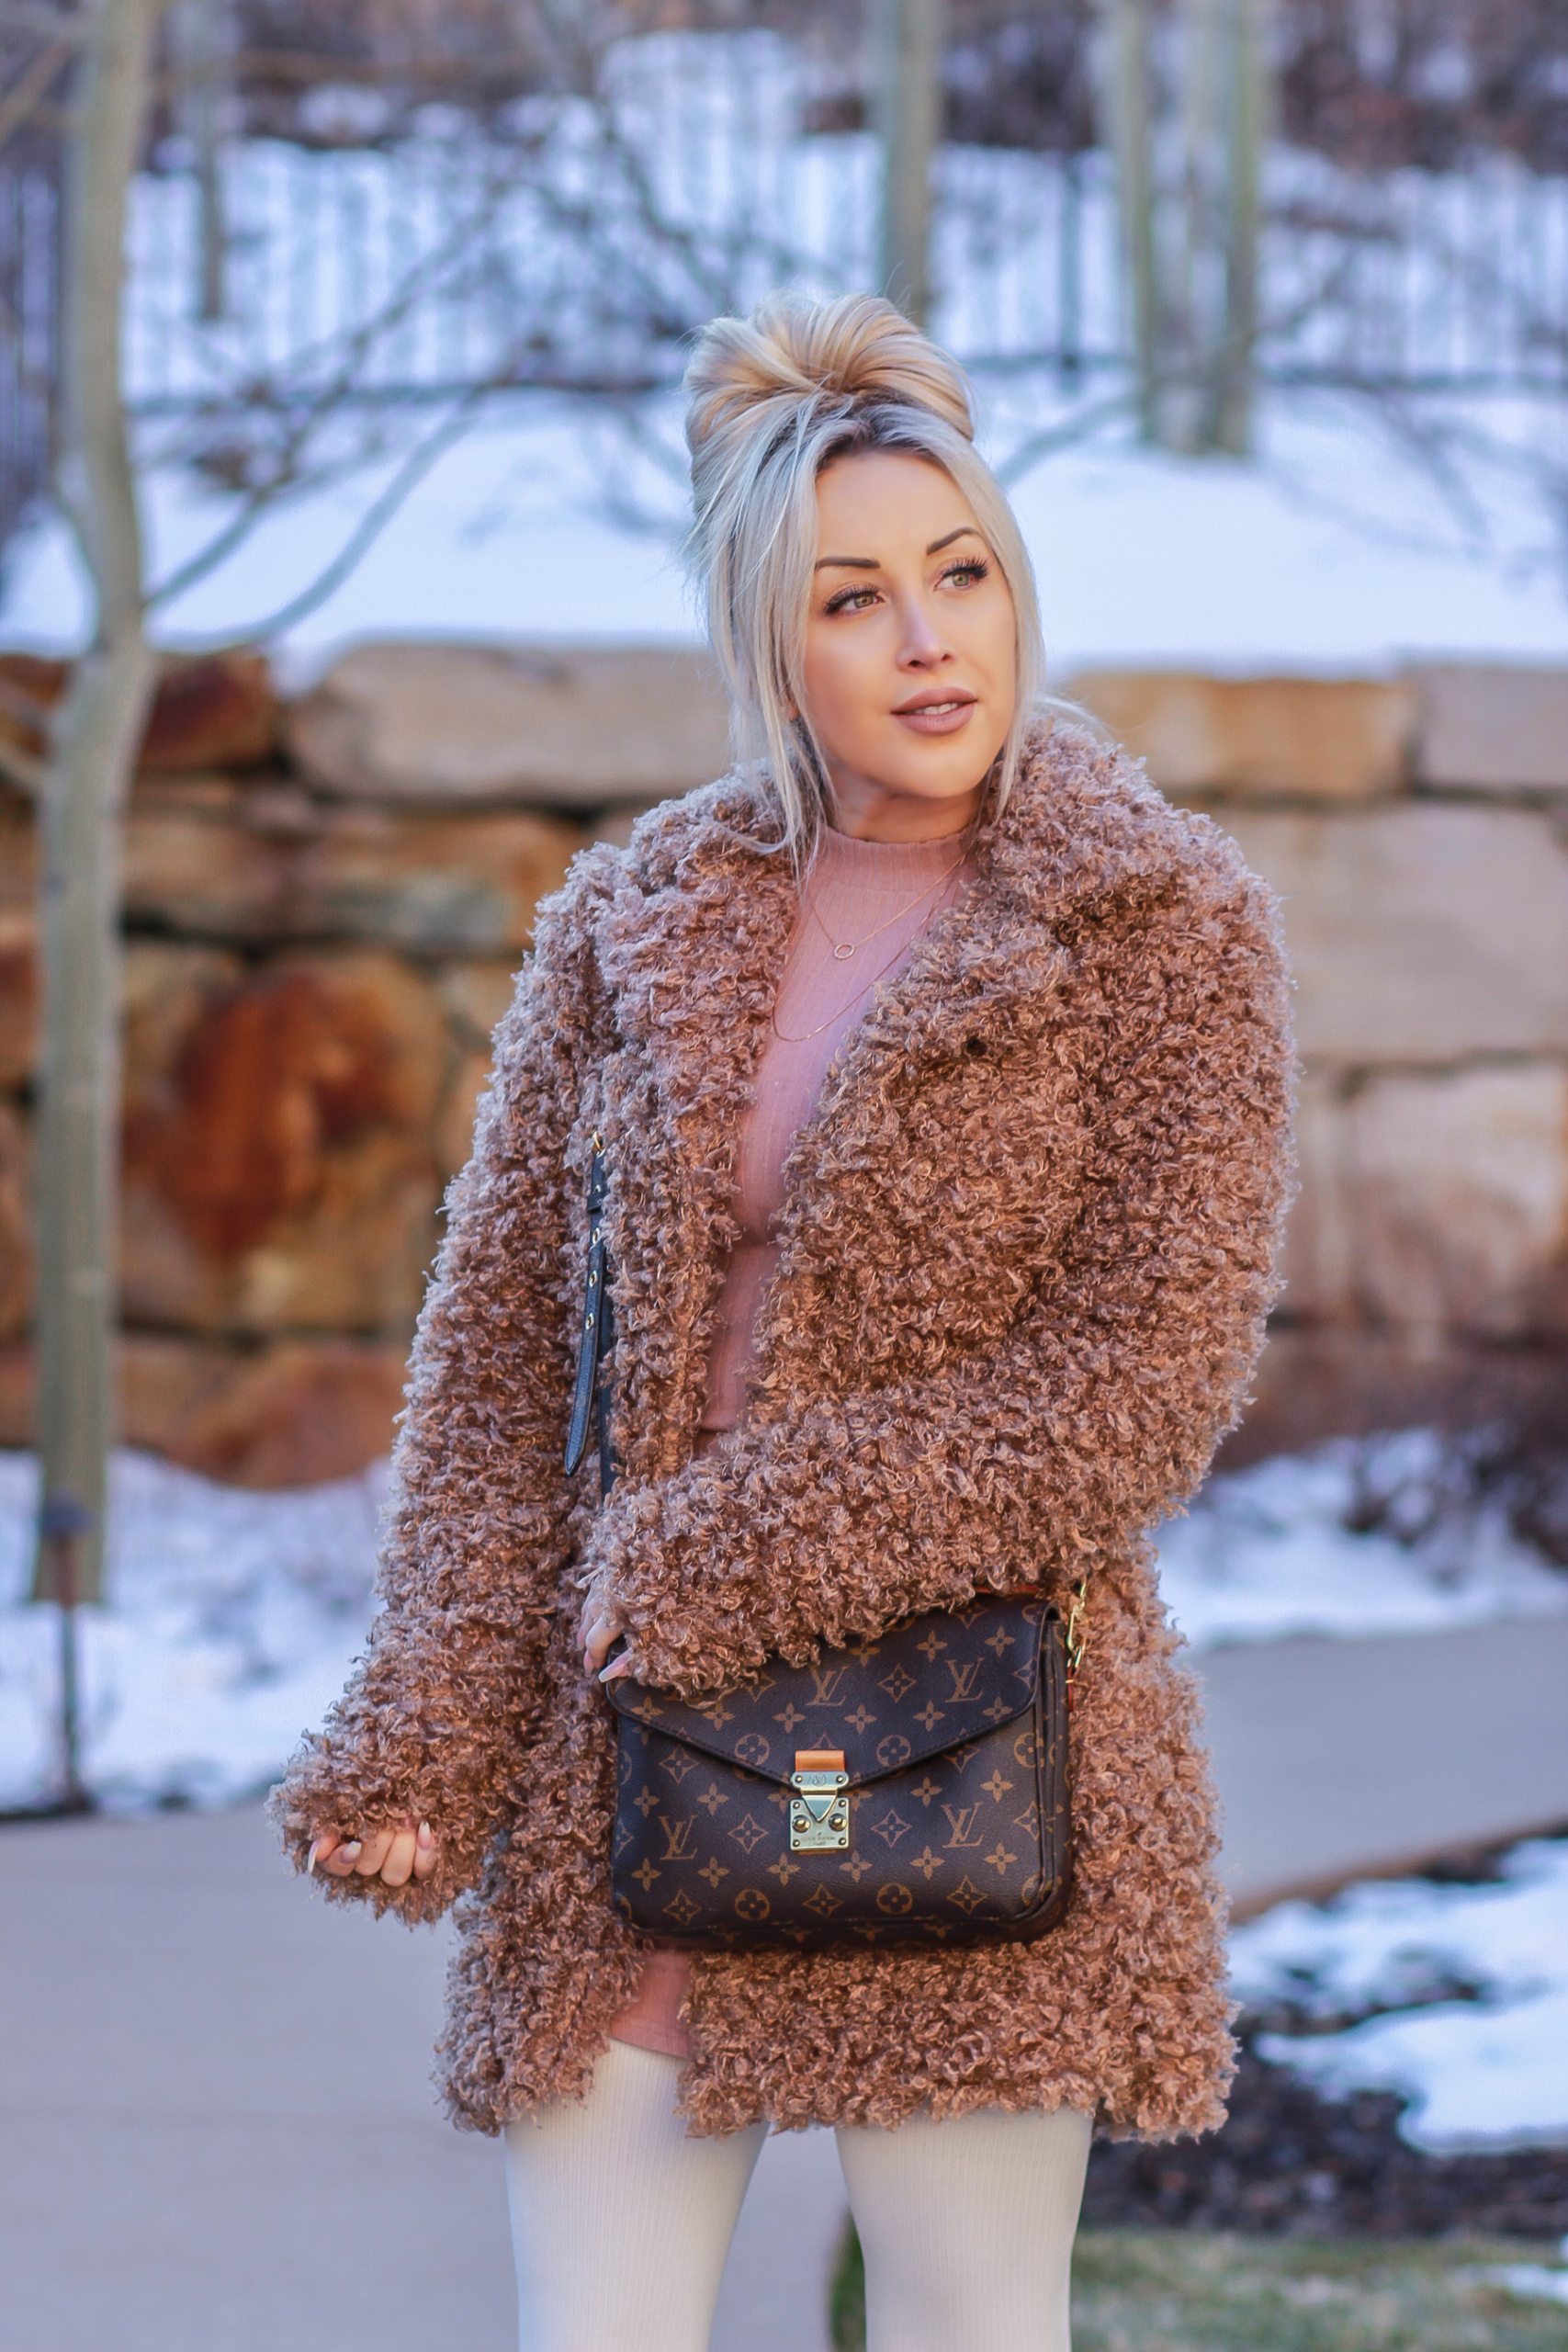 Blondie in the City | Winter Fashion, Faux Fur Coat | Louis Vuitton | Messy Bun